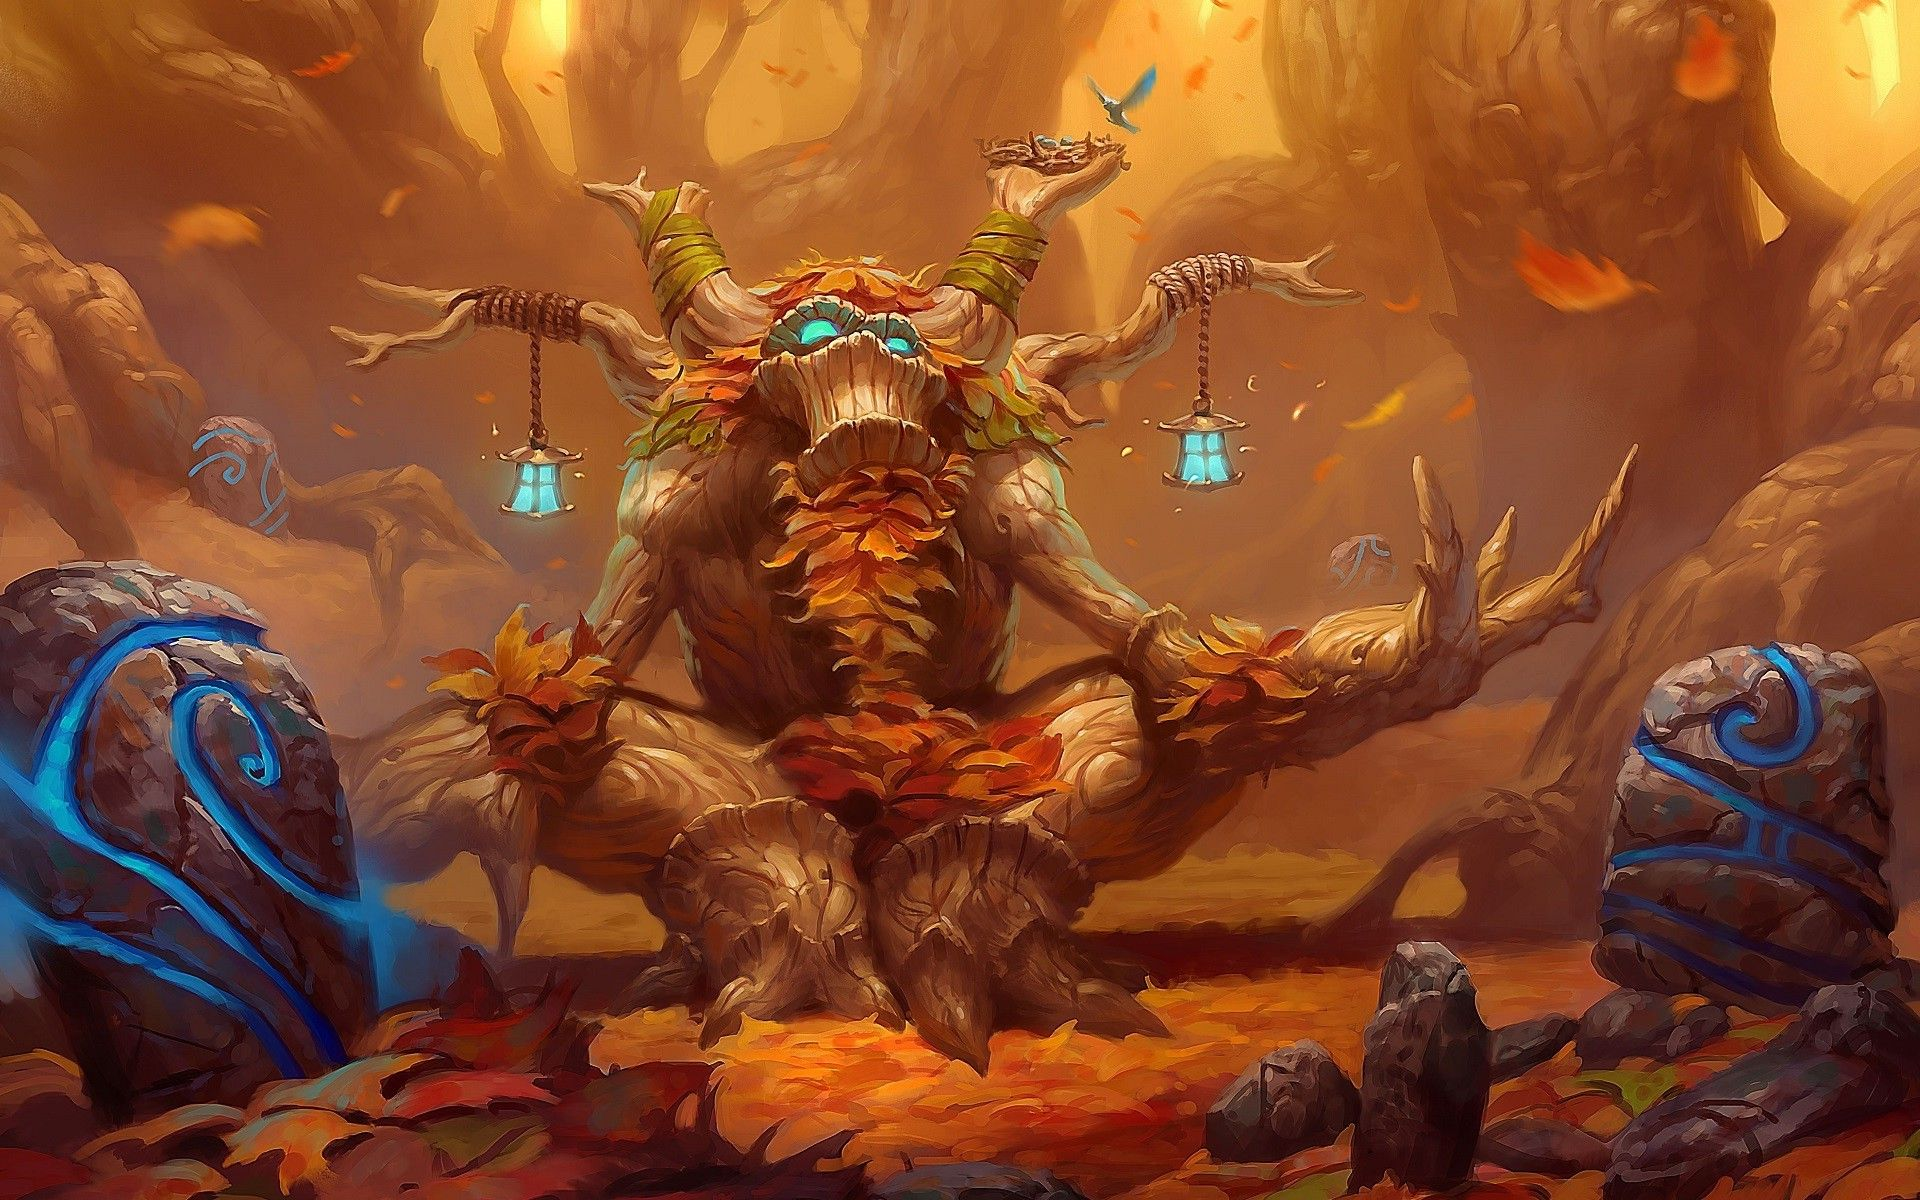 Hearthstone Heroes Of Warcraft World Of Warcraft Druid World Of Warcraft Wallpaper Warcraft Art